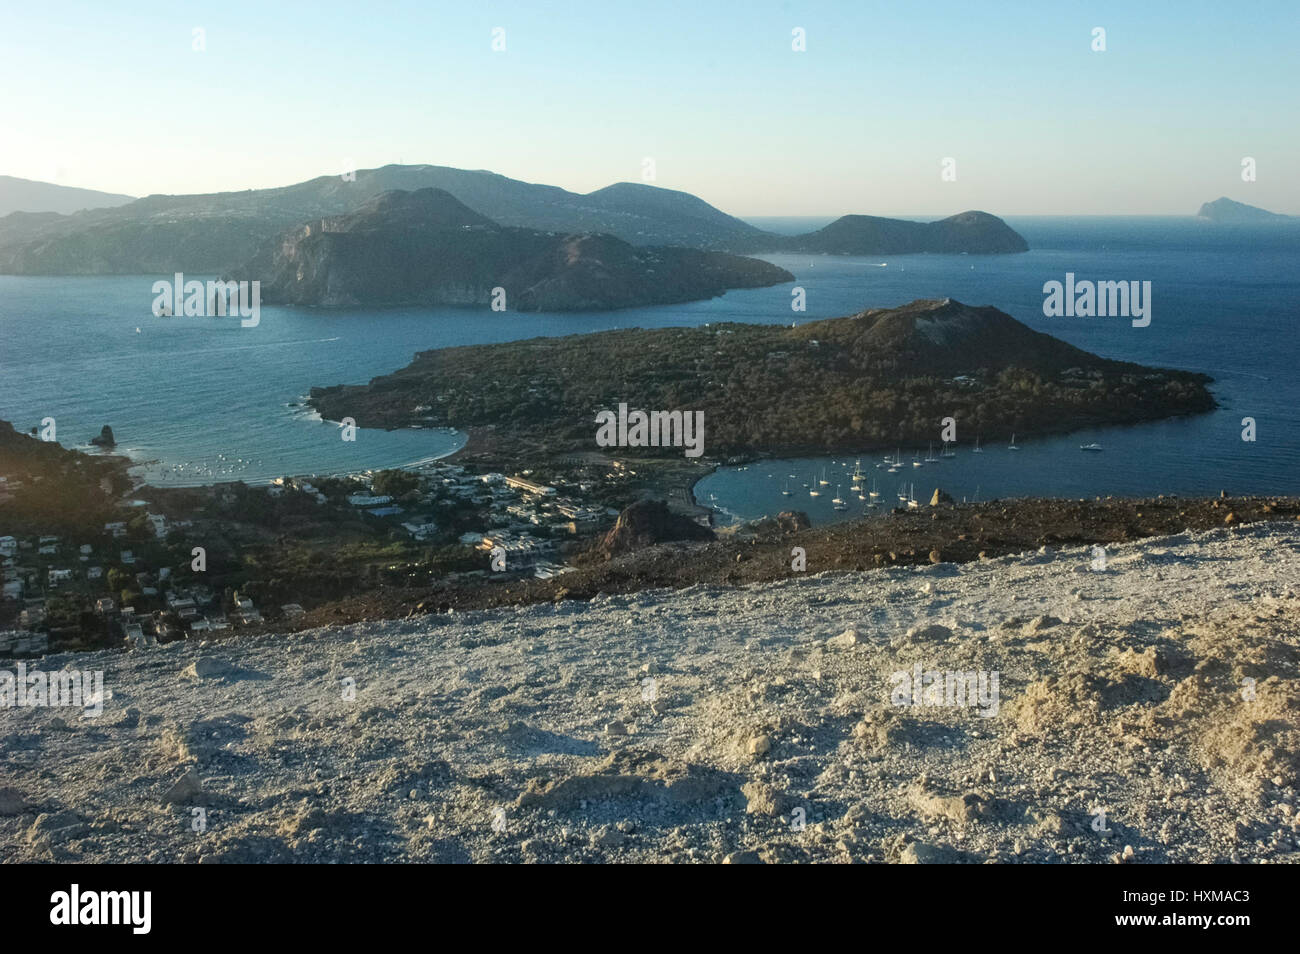 View of suggestive scenery of the Aeolian Islands Stock Photo